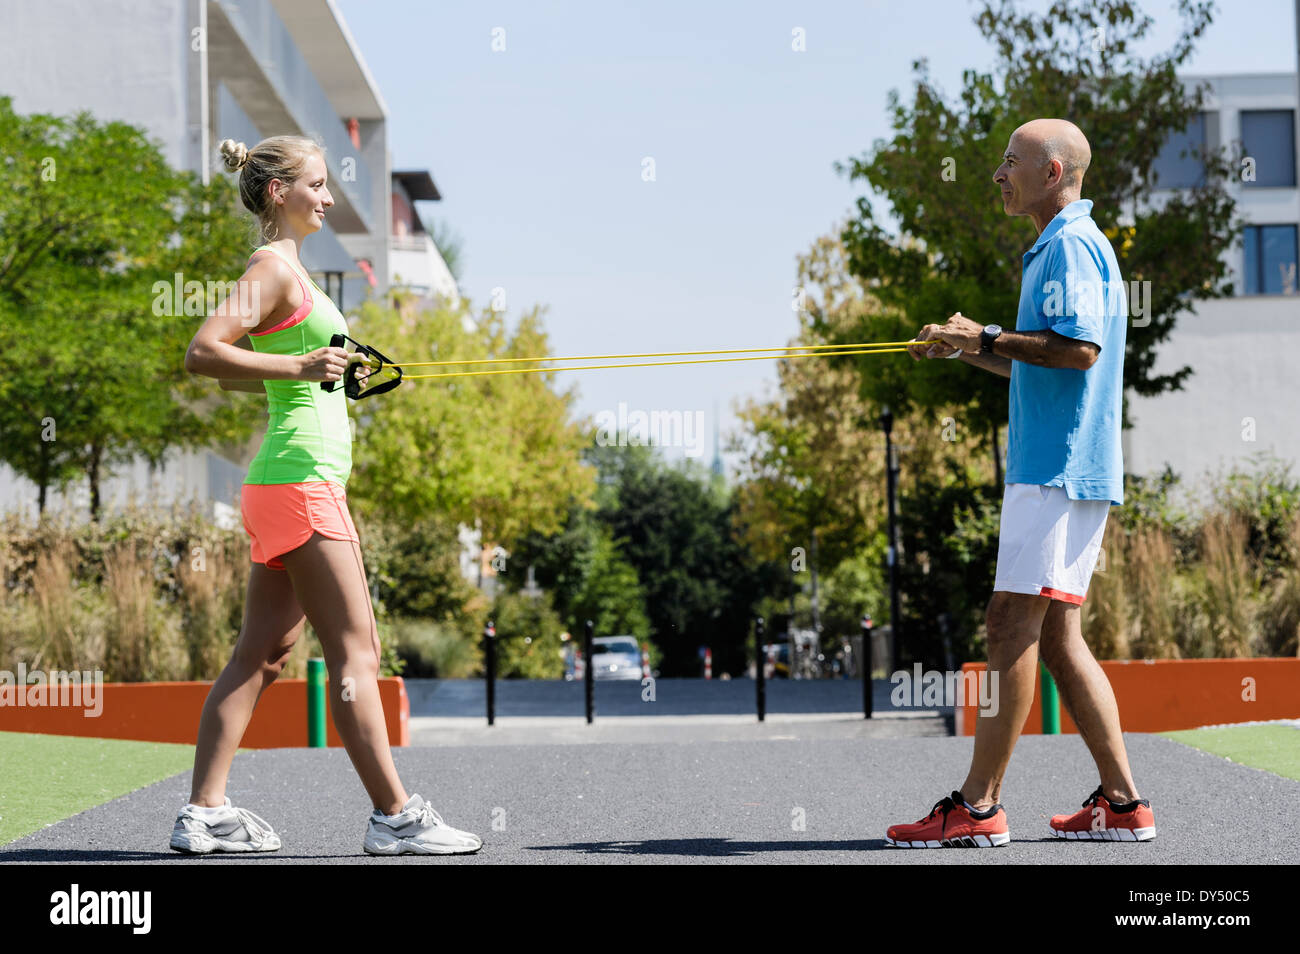 Young woman and trainer using exercise ropes in park - Stock Image